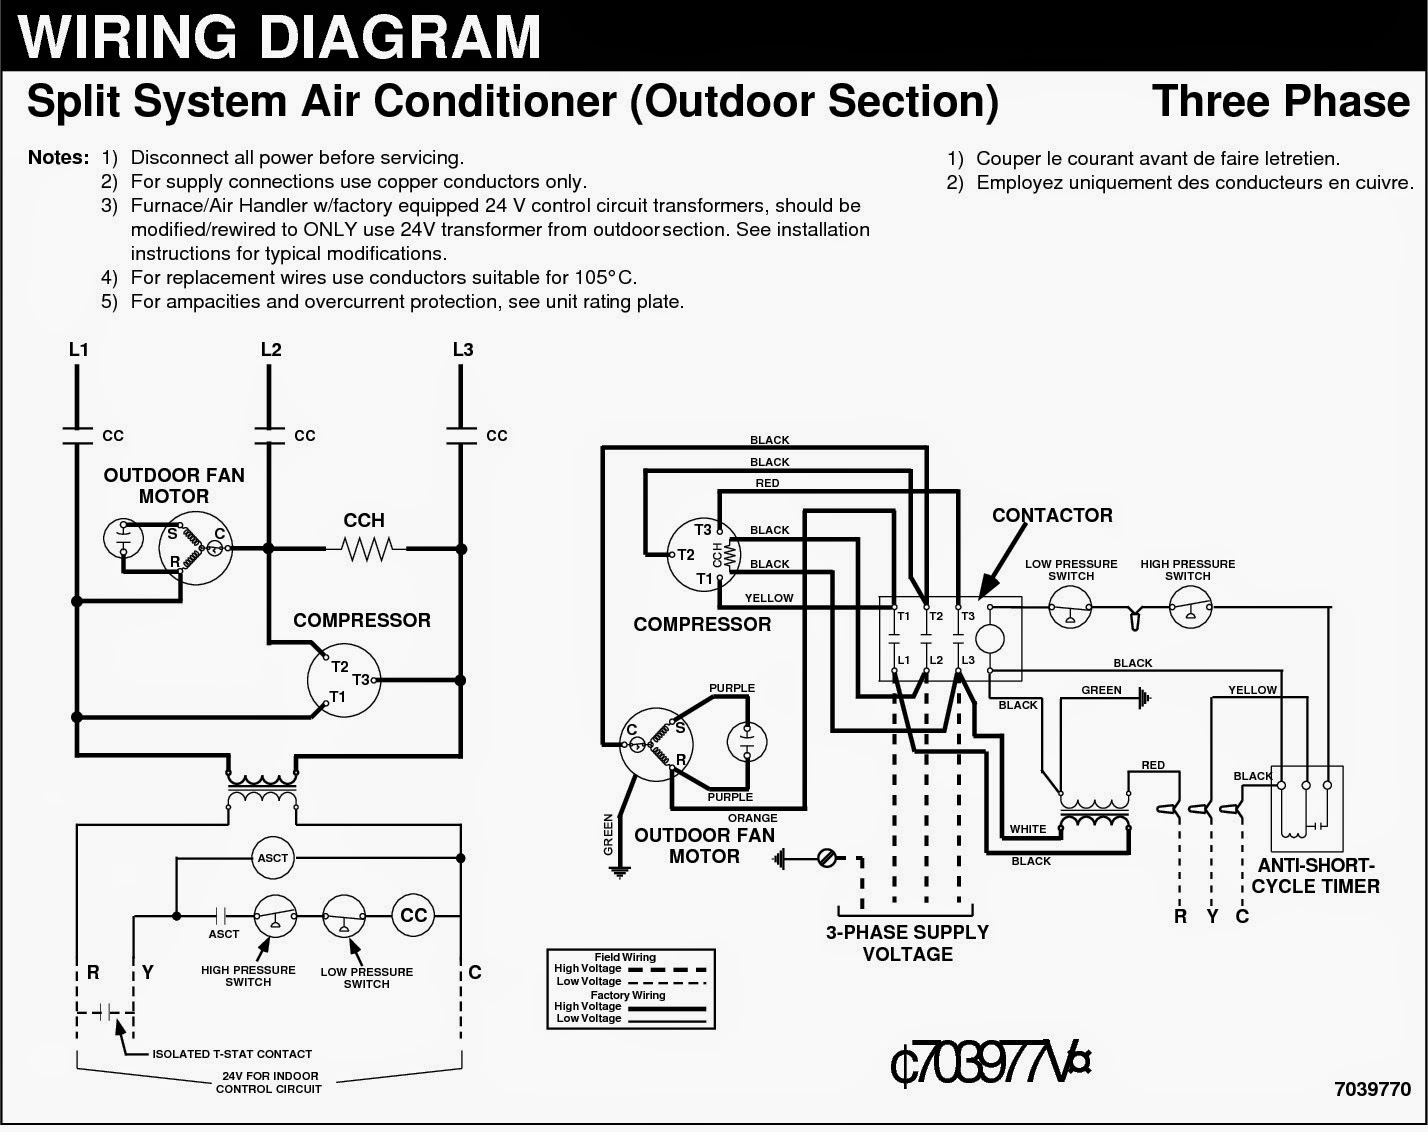 3+phase ac compressor wiring diagram bitzer compressor wiring diagram compressor wiring diagram single phase at cos-gaming.co